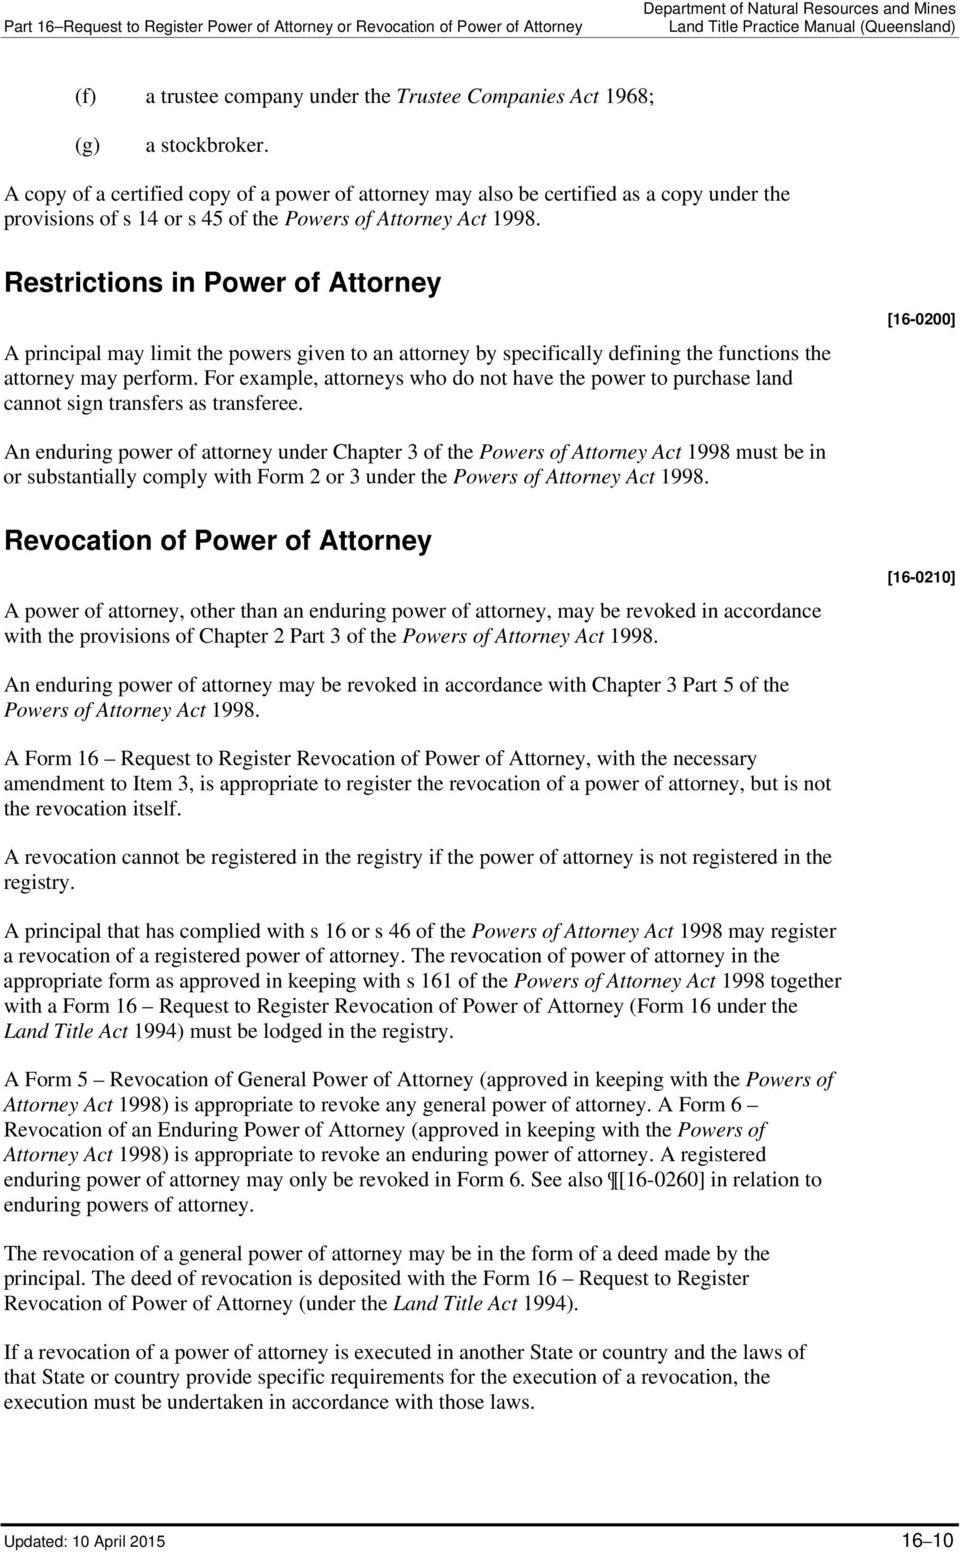 Restrictions in Power of Attorney A principal may limit the powers given to an attorney by specifically defining the functions the attorney may perform.